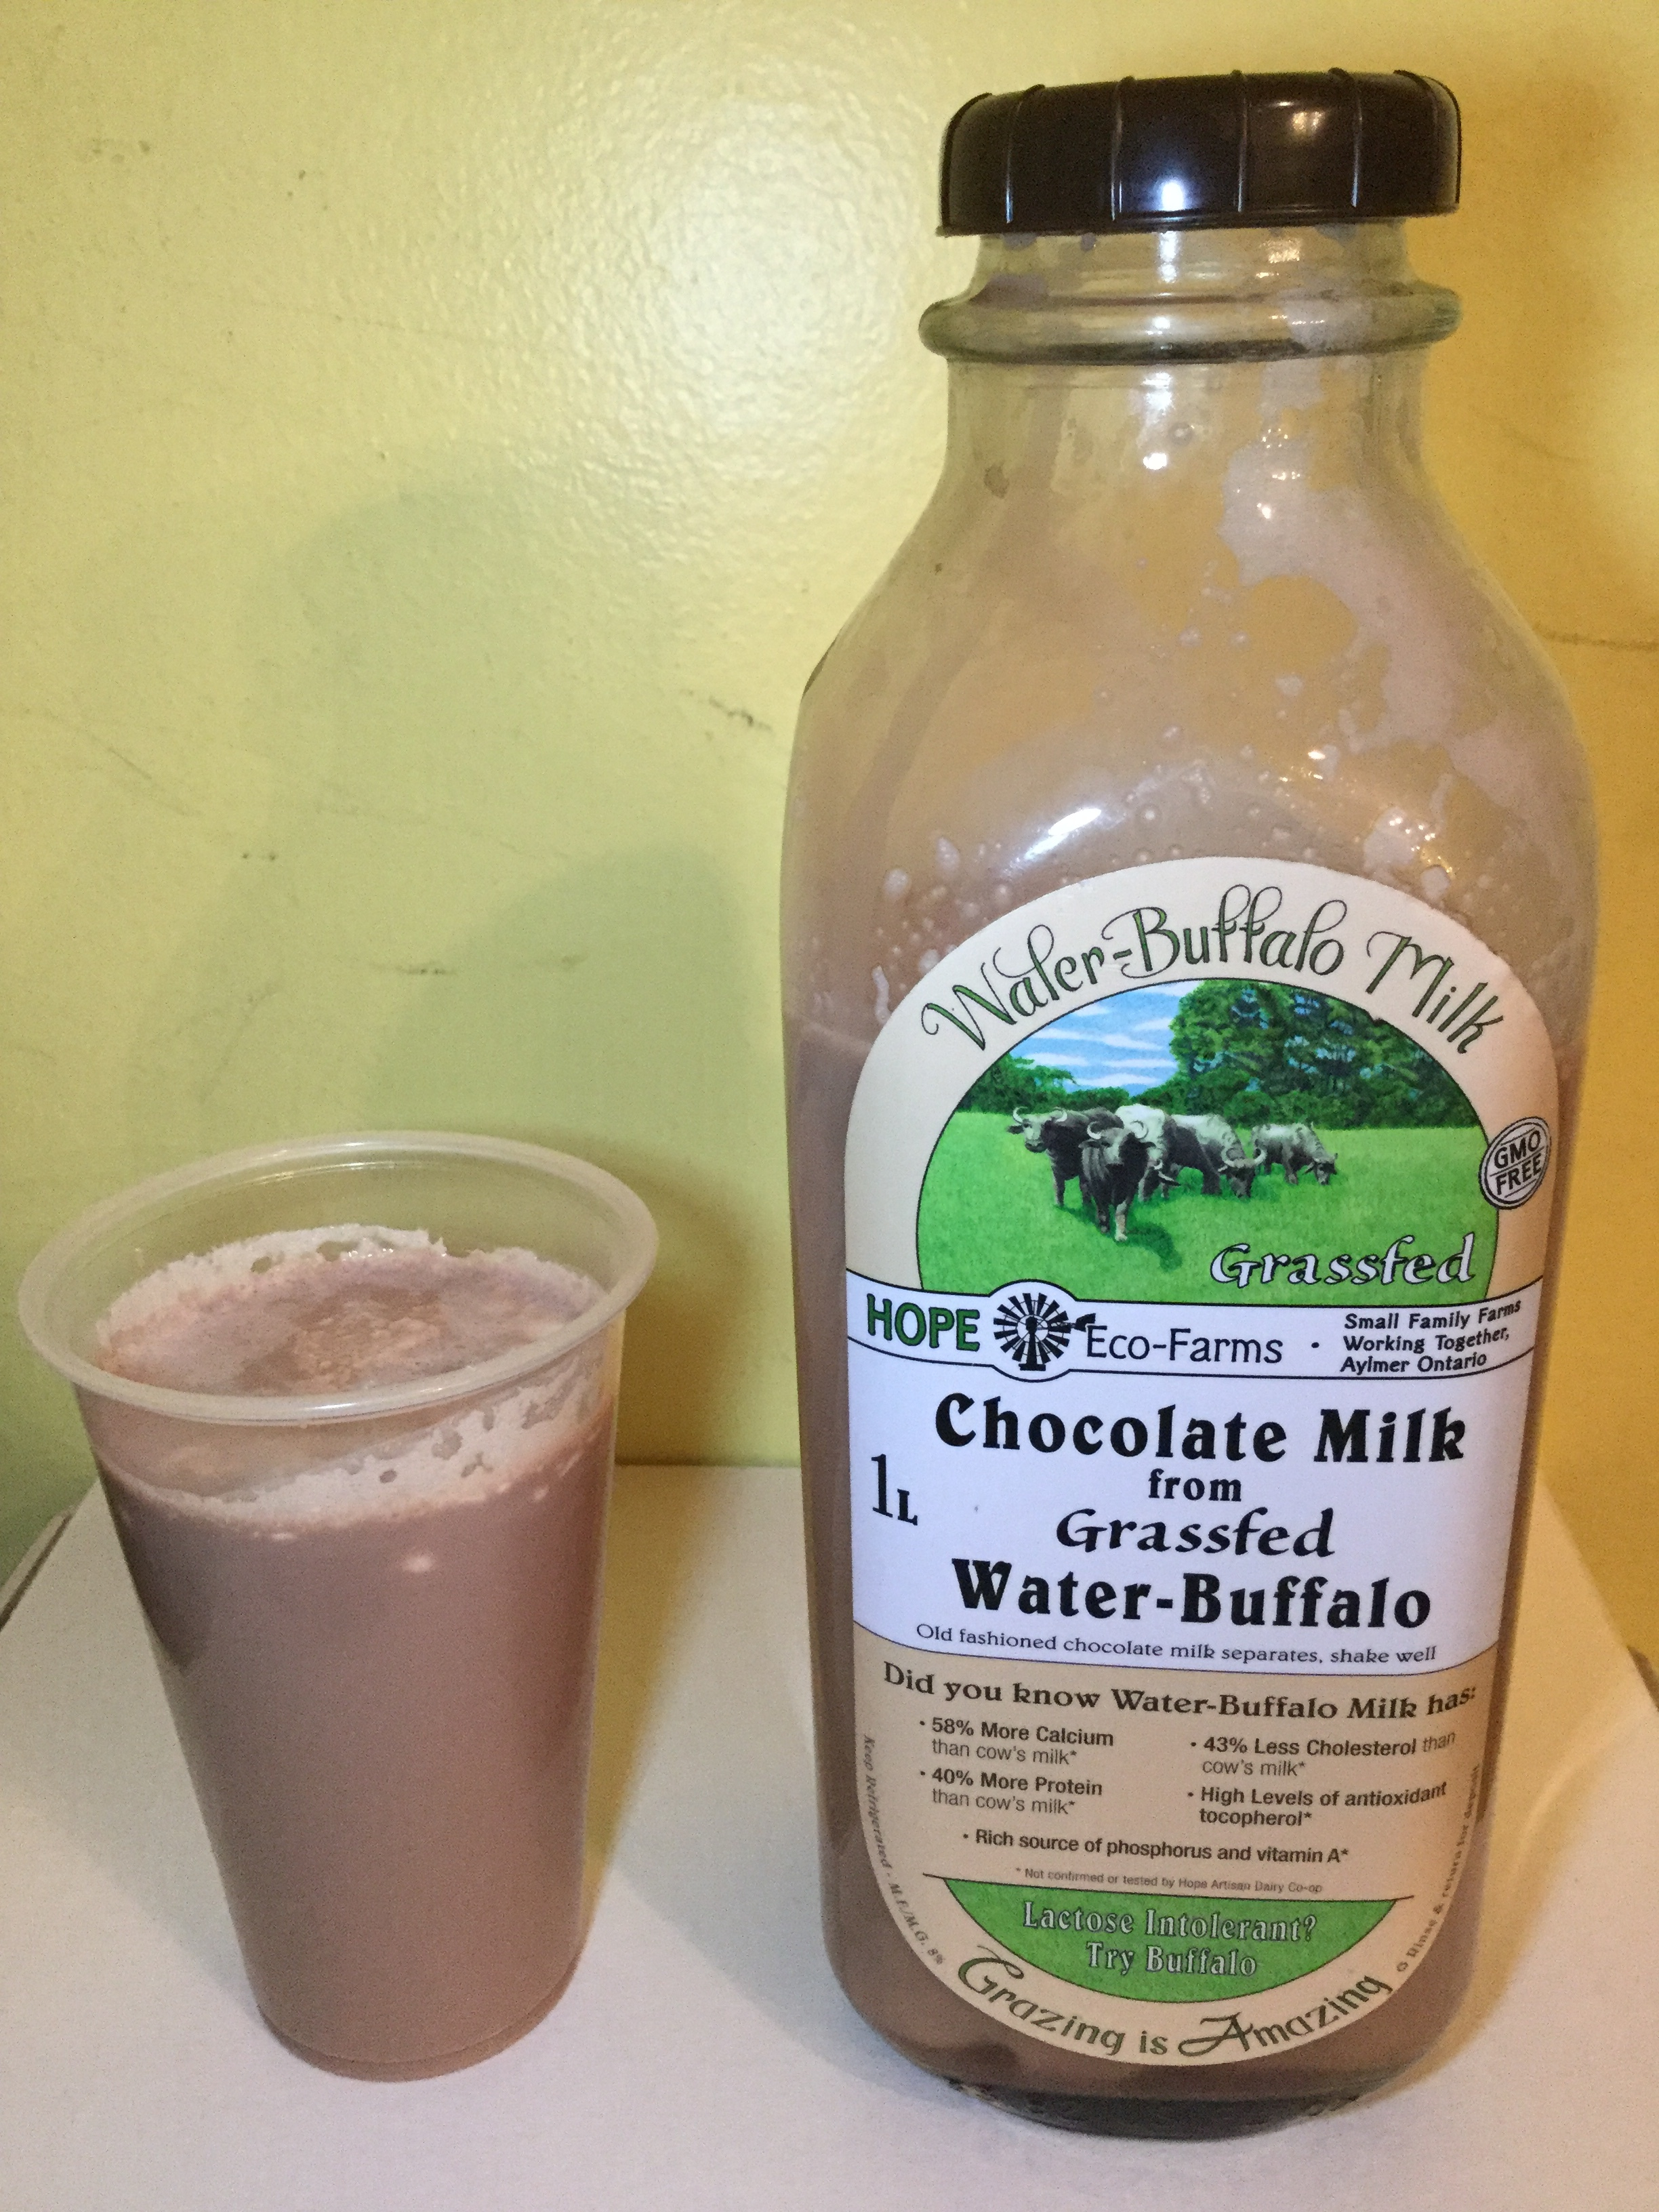 Hope Eco-Farms Chocolate Milk from Grassfed Water-Buffalo Cup